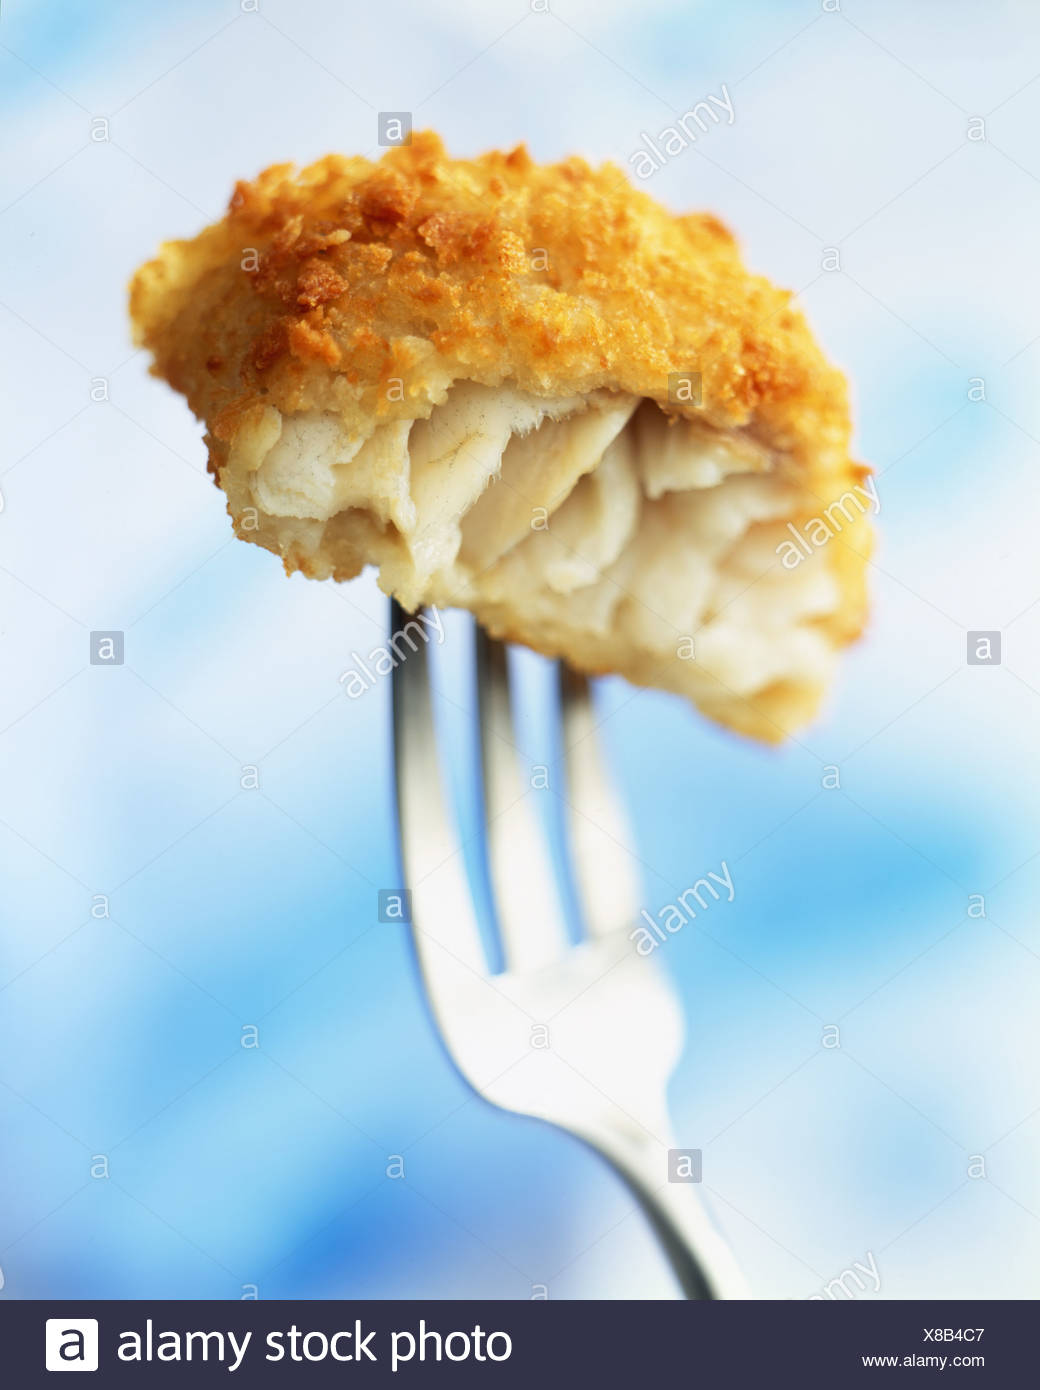 Crunchy breaded cod on fork Stock Photo